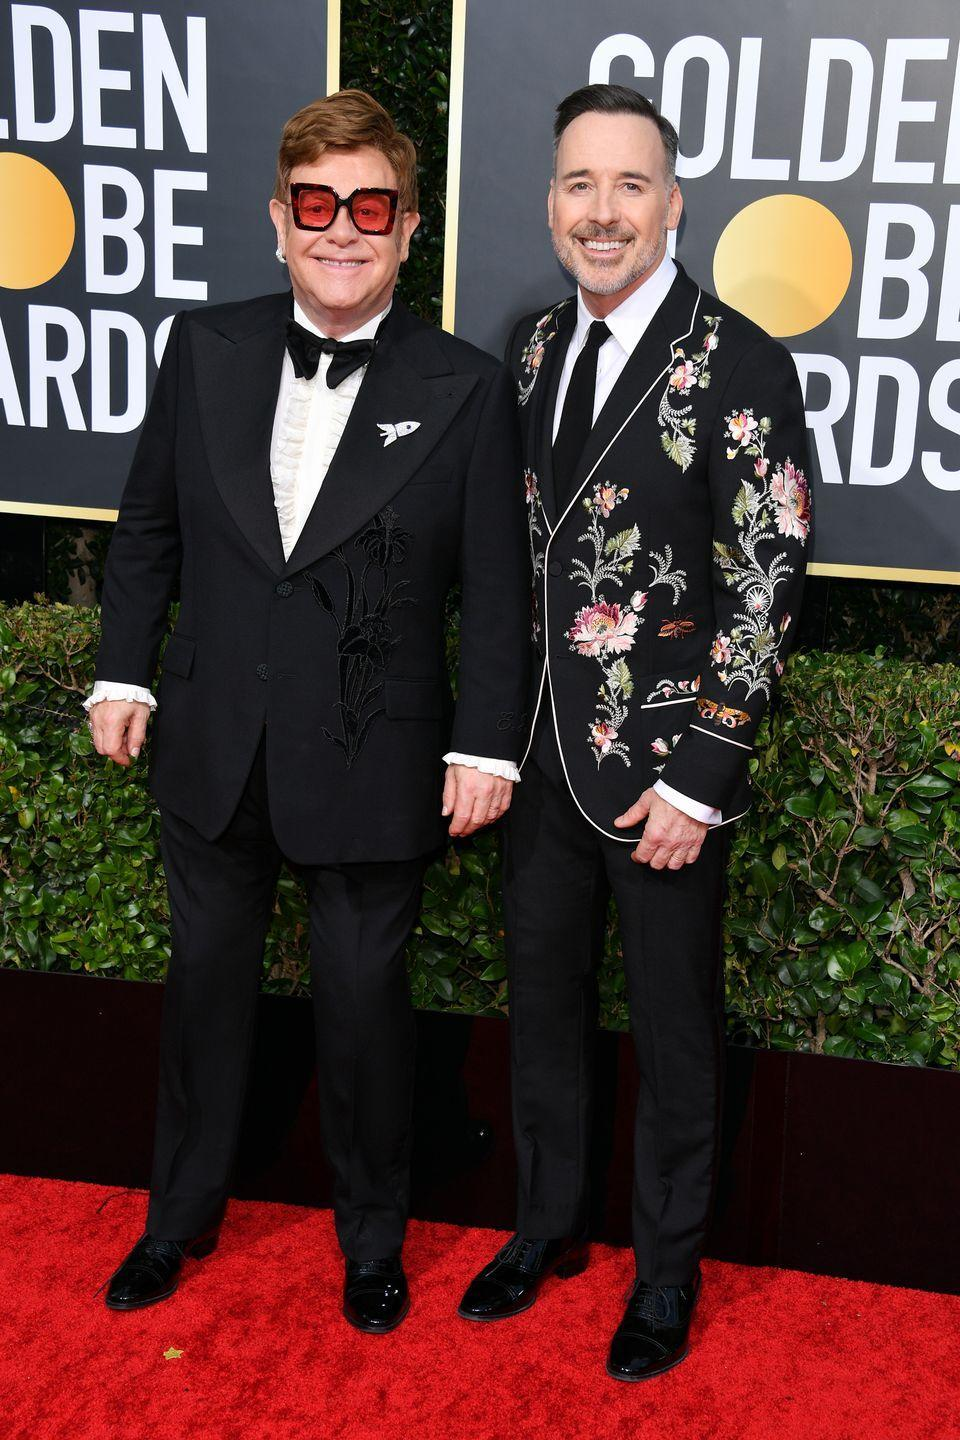 """<p><strong>Age gap: </strong>15 years</p><p>Elton John explores many of his past tumultuous relationships in the award-winning movie <em>Rocketman. </em>While romance wasn't always great for the 72-year-old star, he finally found the love of his life in Canadian filmmaker <a href=""""https://www.goodhousekeeping.com/life/relationships/news/a47743/elton-john-husband-david-furnish/"""" rel=""""nofollow noopener"""" target=""""_blank"""" data-ylk=""""slk:David Furnish"""" class=""""link rapid-noclick-resp"""">David Furnish</a>. Aw! </p>"""